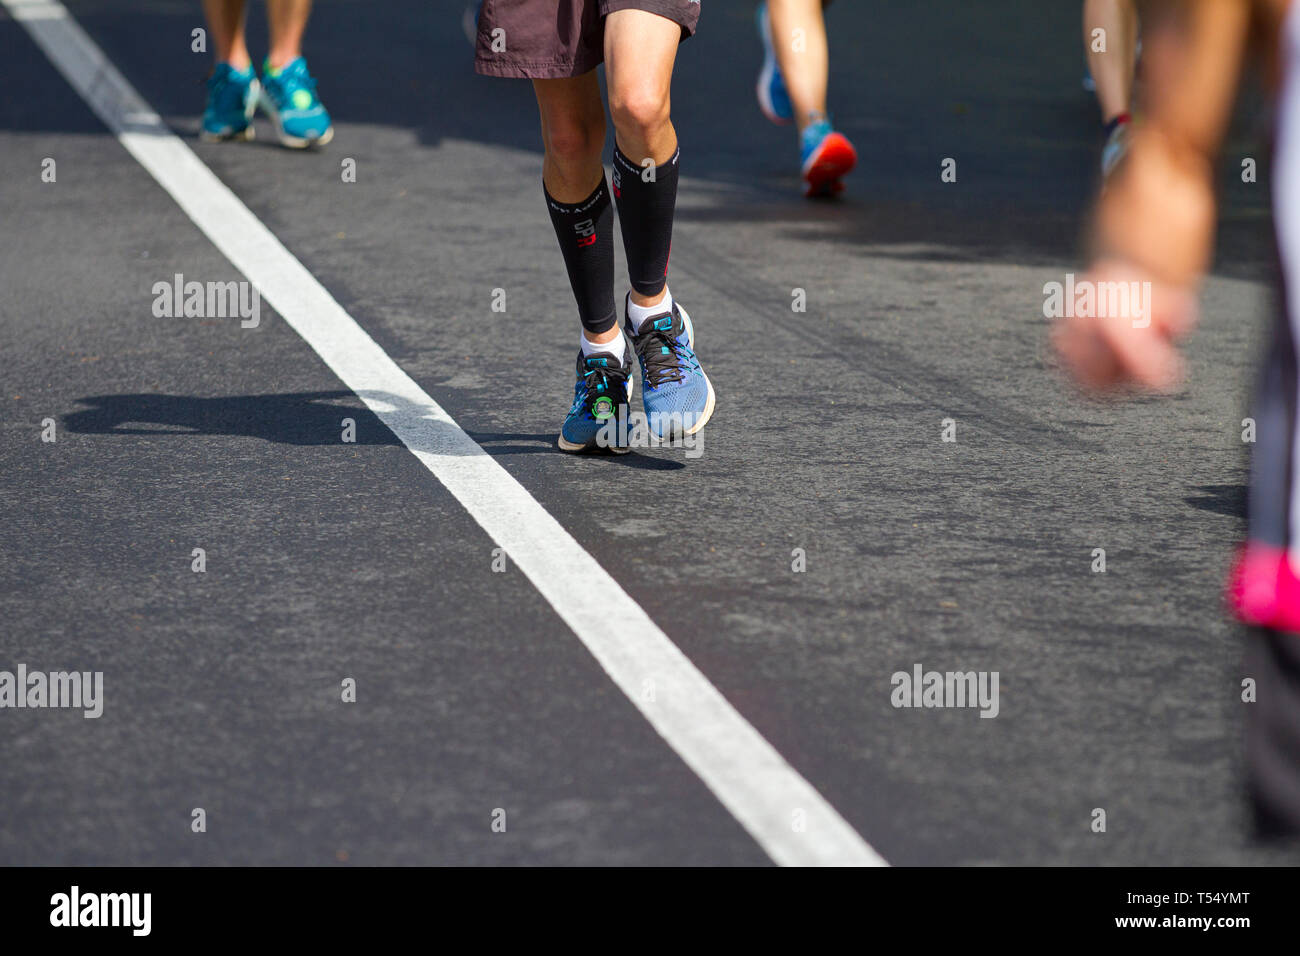 Shoes and Feet. Running the Old Mutual Two Oceans Marathon - Stock Image